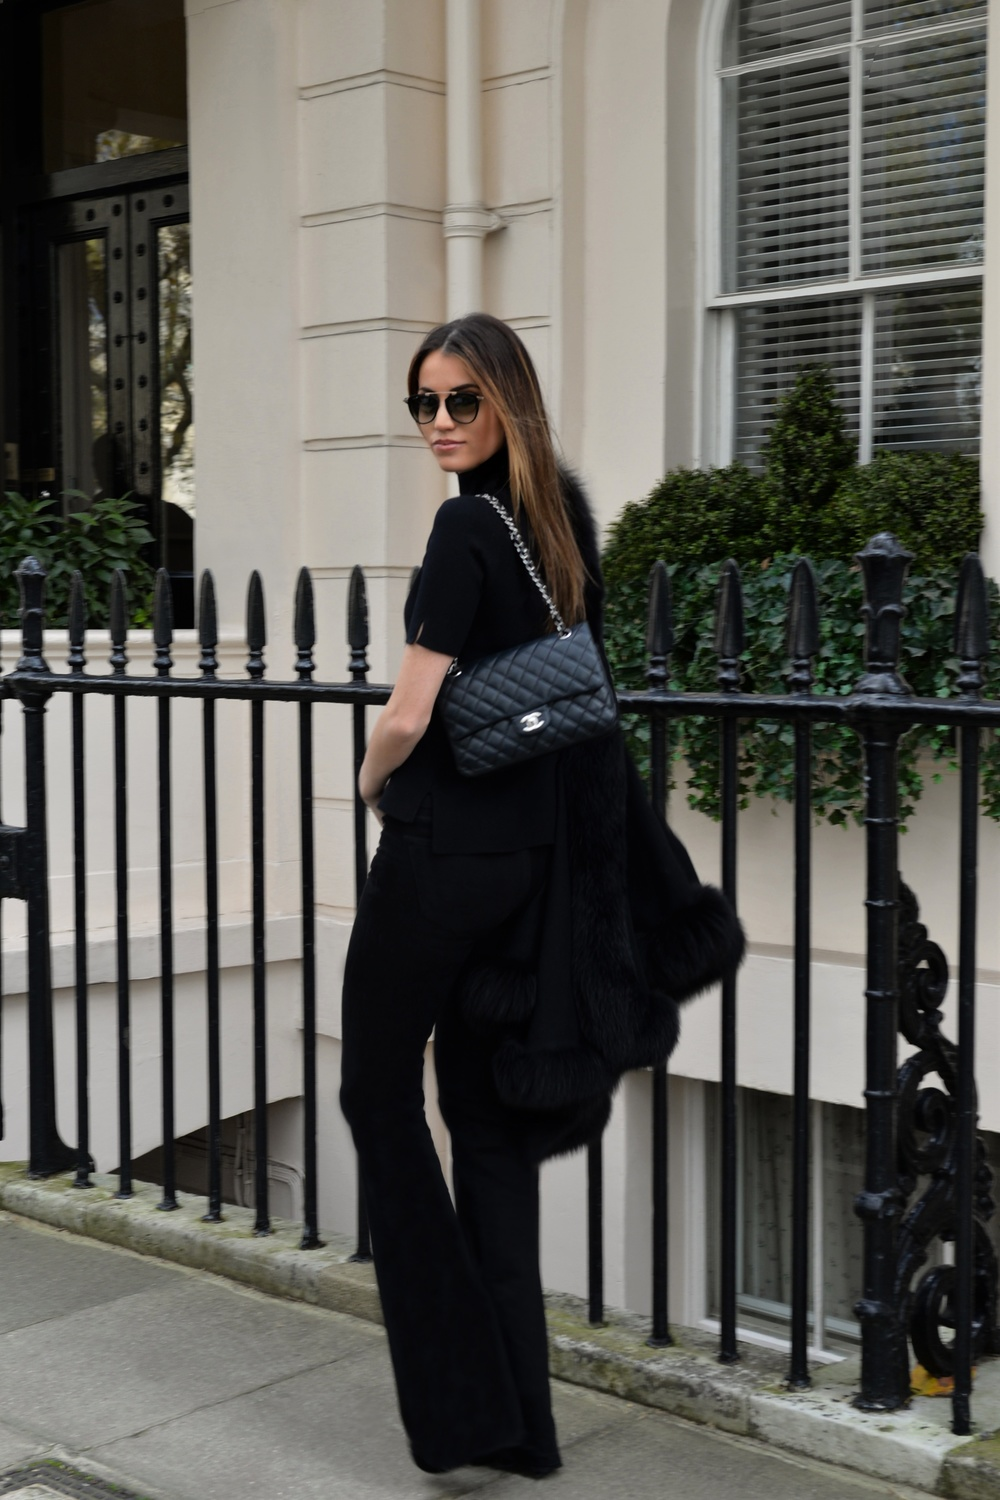 photo (2) #BlackFriday OOTD. Sharp and modern all black look. Ultra soft black cashmere cape with fur. Worn by Fashion Blogger Maureen Sophie Kragt from TheVanillawoods Blog.